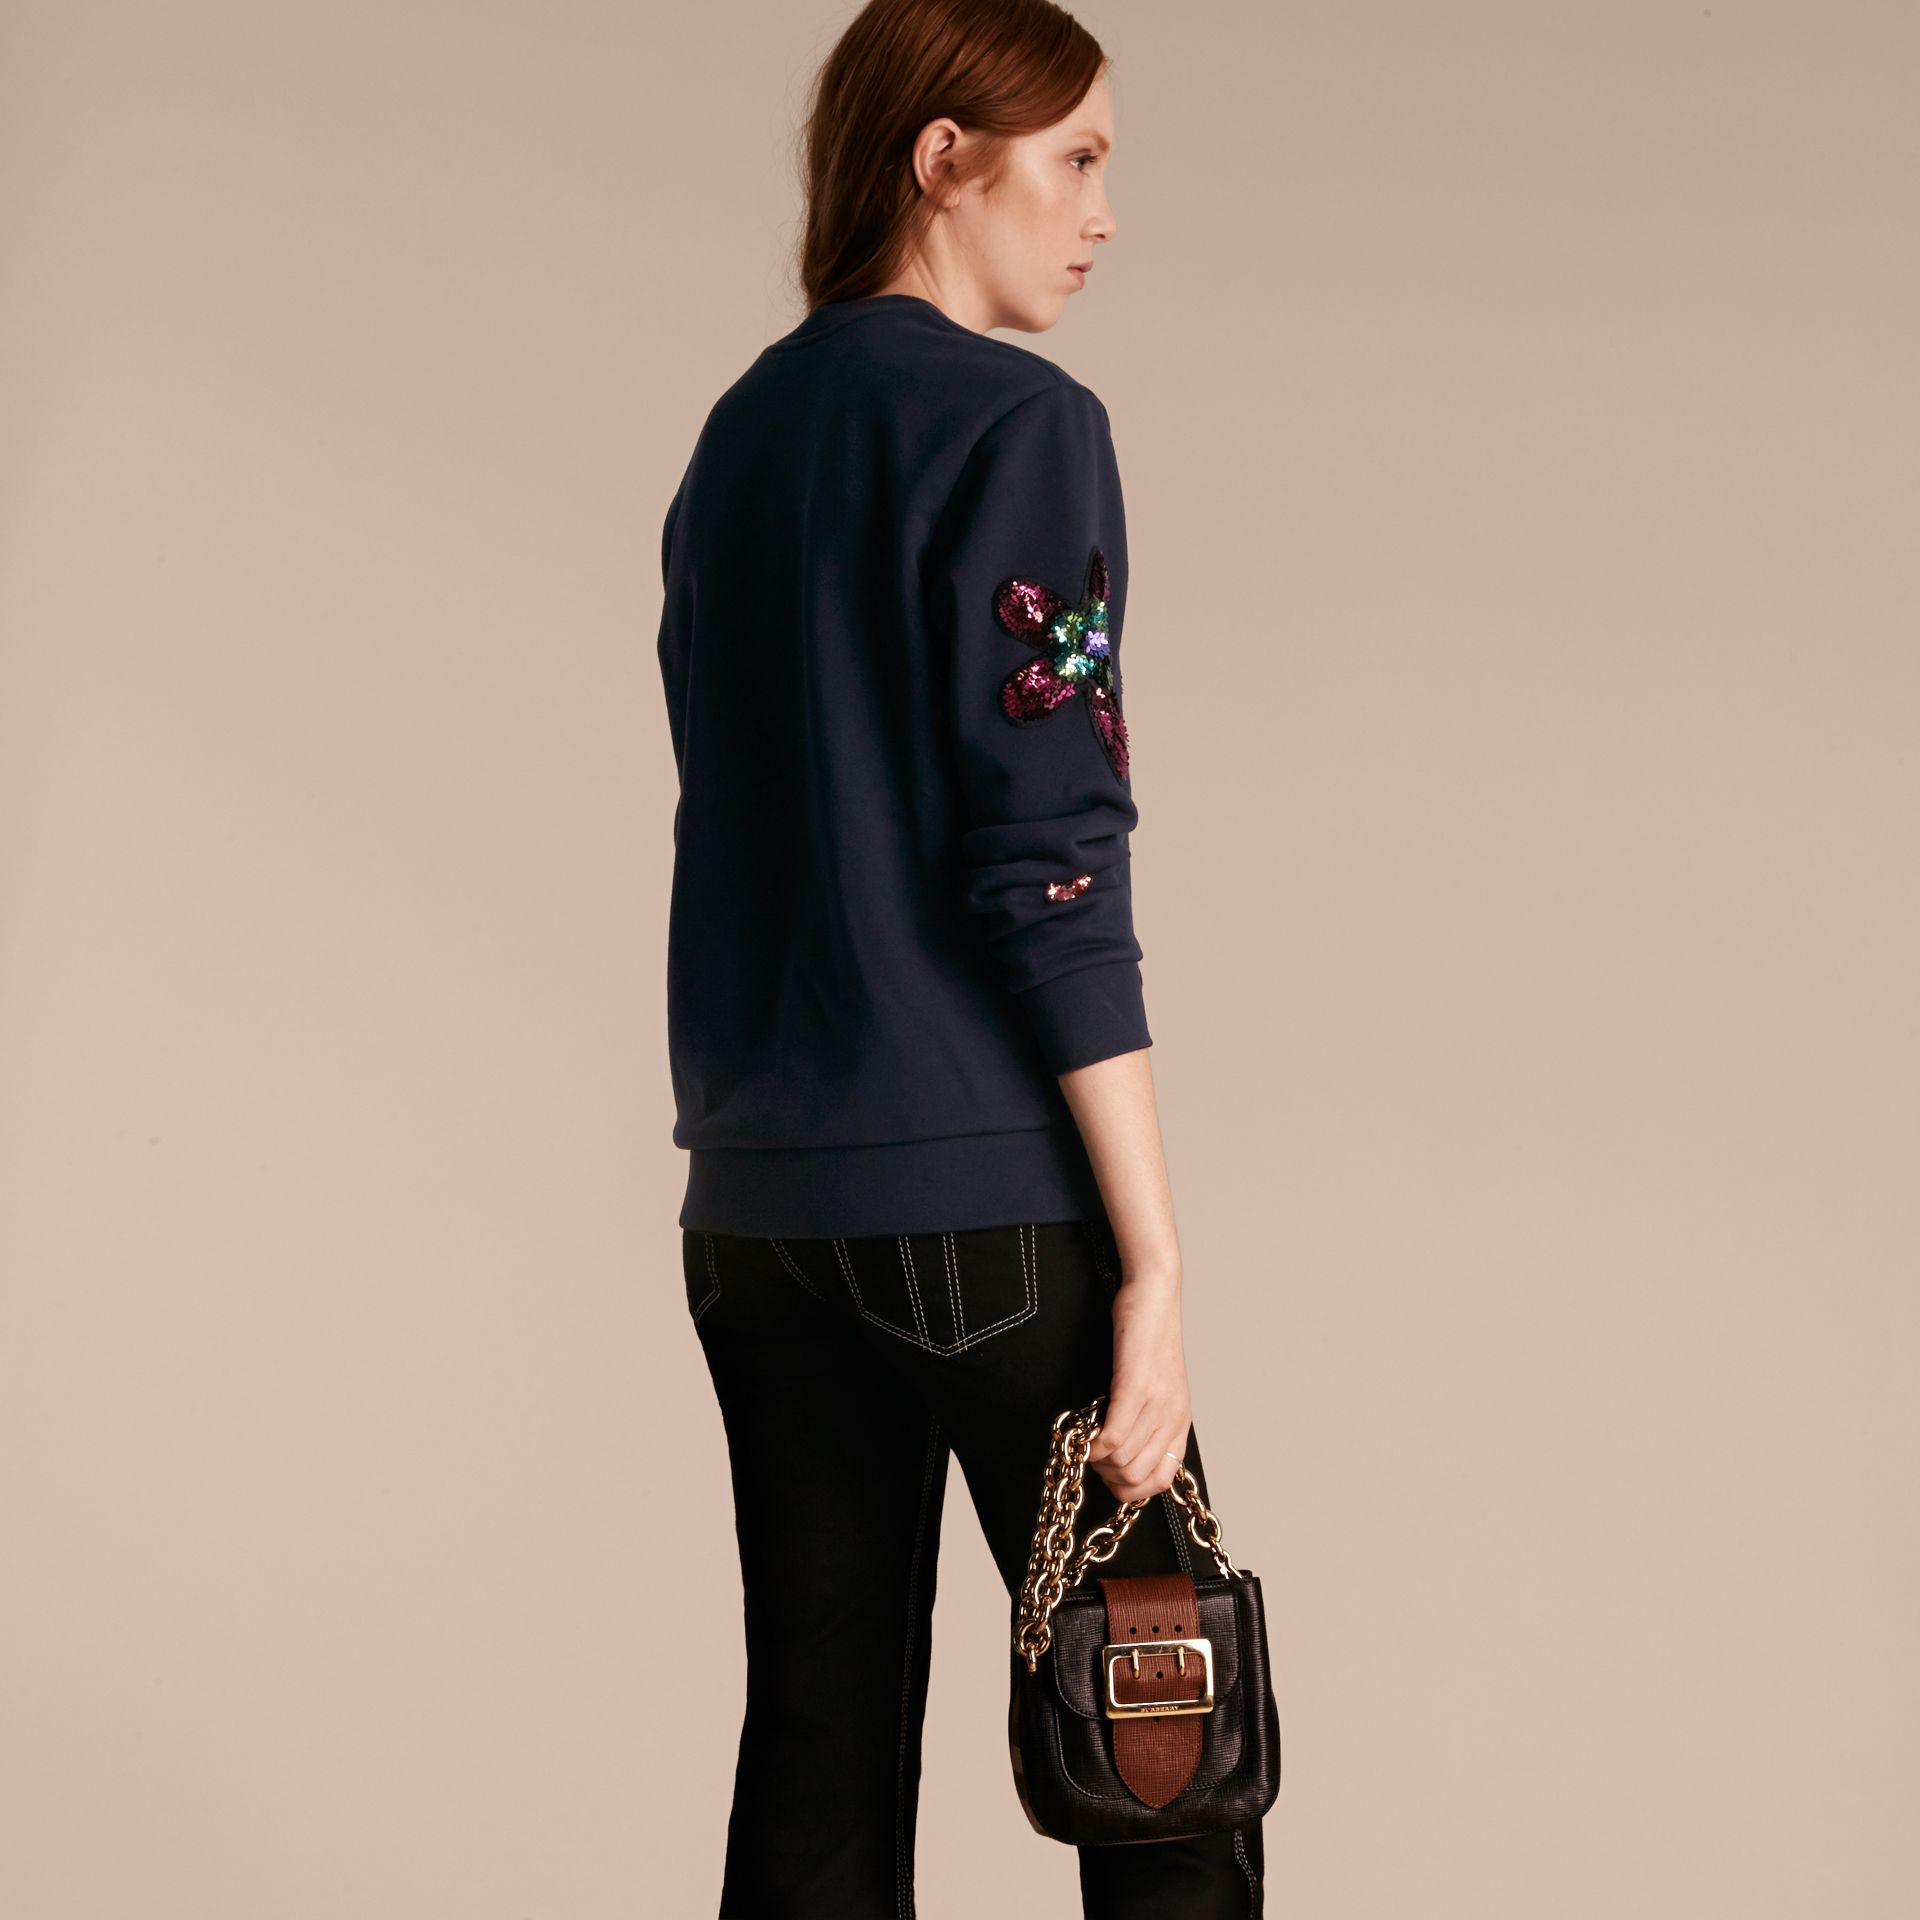 Navy Sequin Floral Appliqué Cotton Sweatshirt - gallery image 3